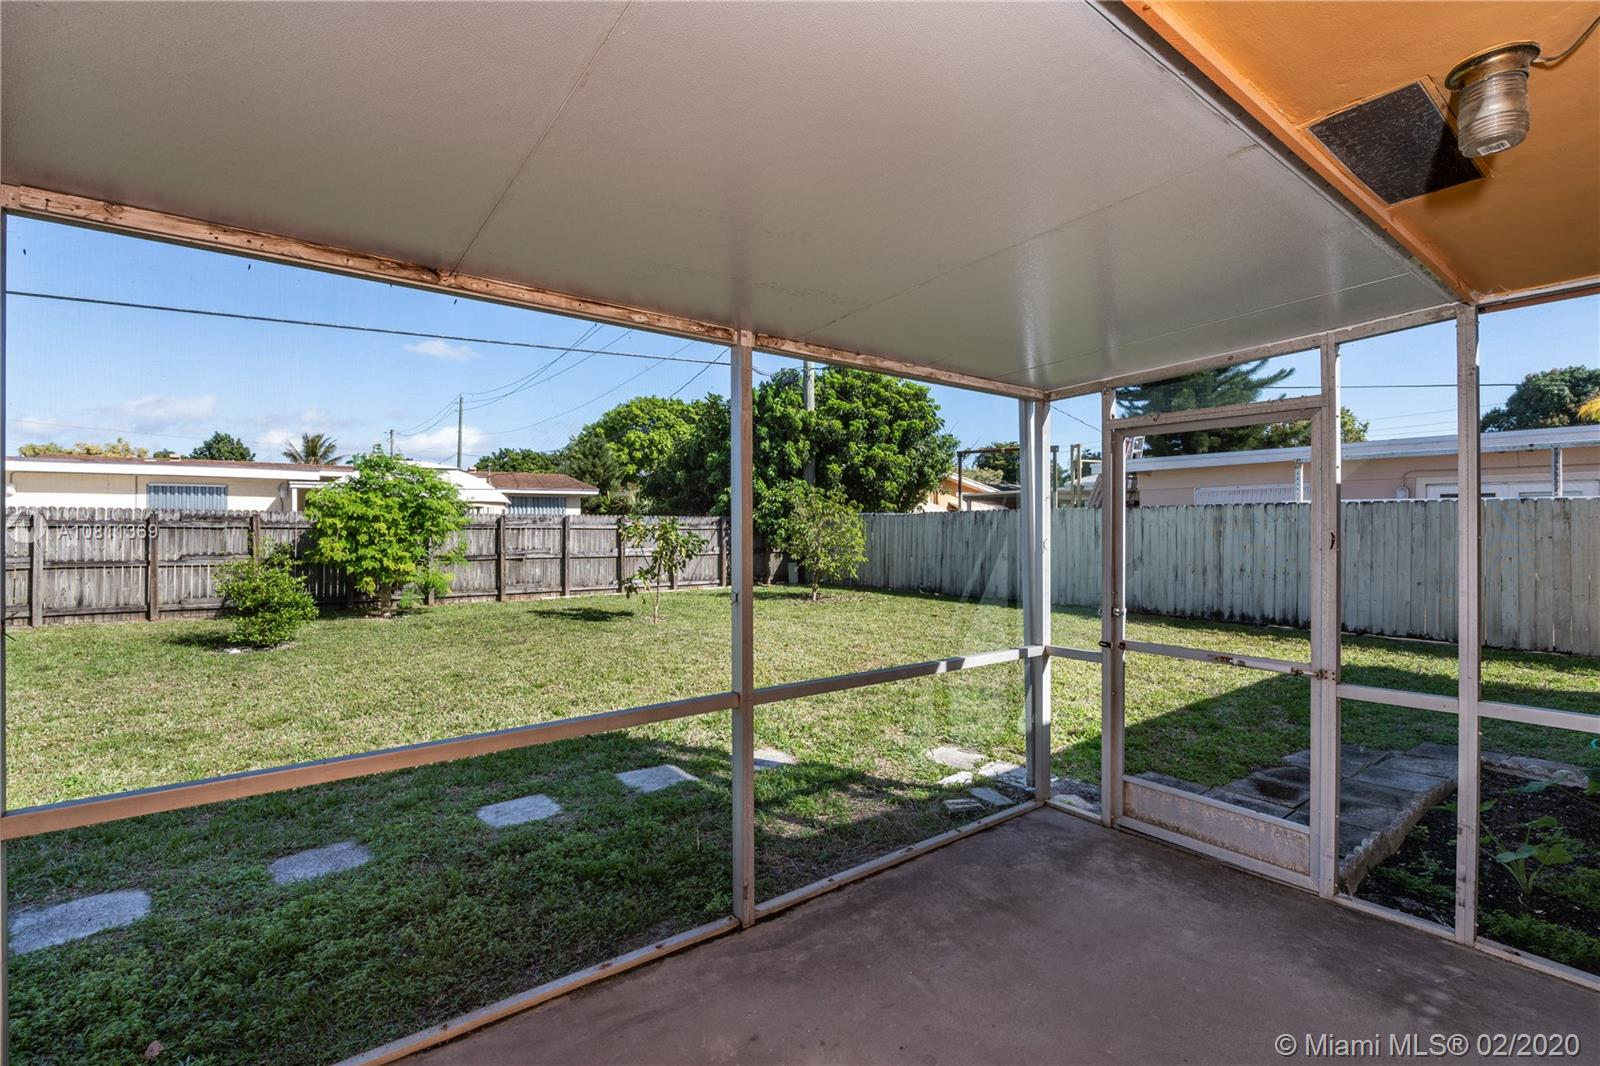 8111 NW 15th Ct, Pembroke Pines, Florida 33024, 2 Bedrooms Bedrooms, ,1 BathroomBathrooms,Residential,For Sale,8111 NW 15th Ct,A10811369